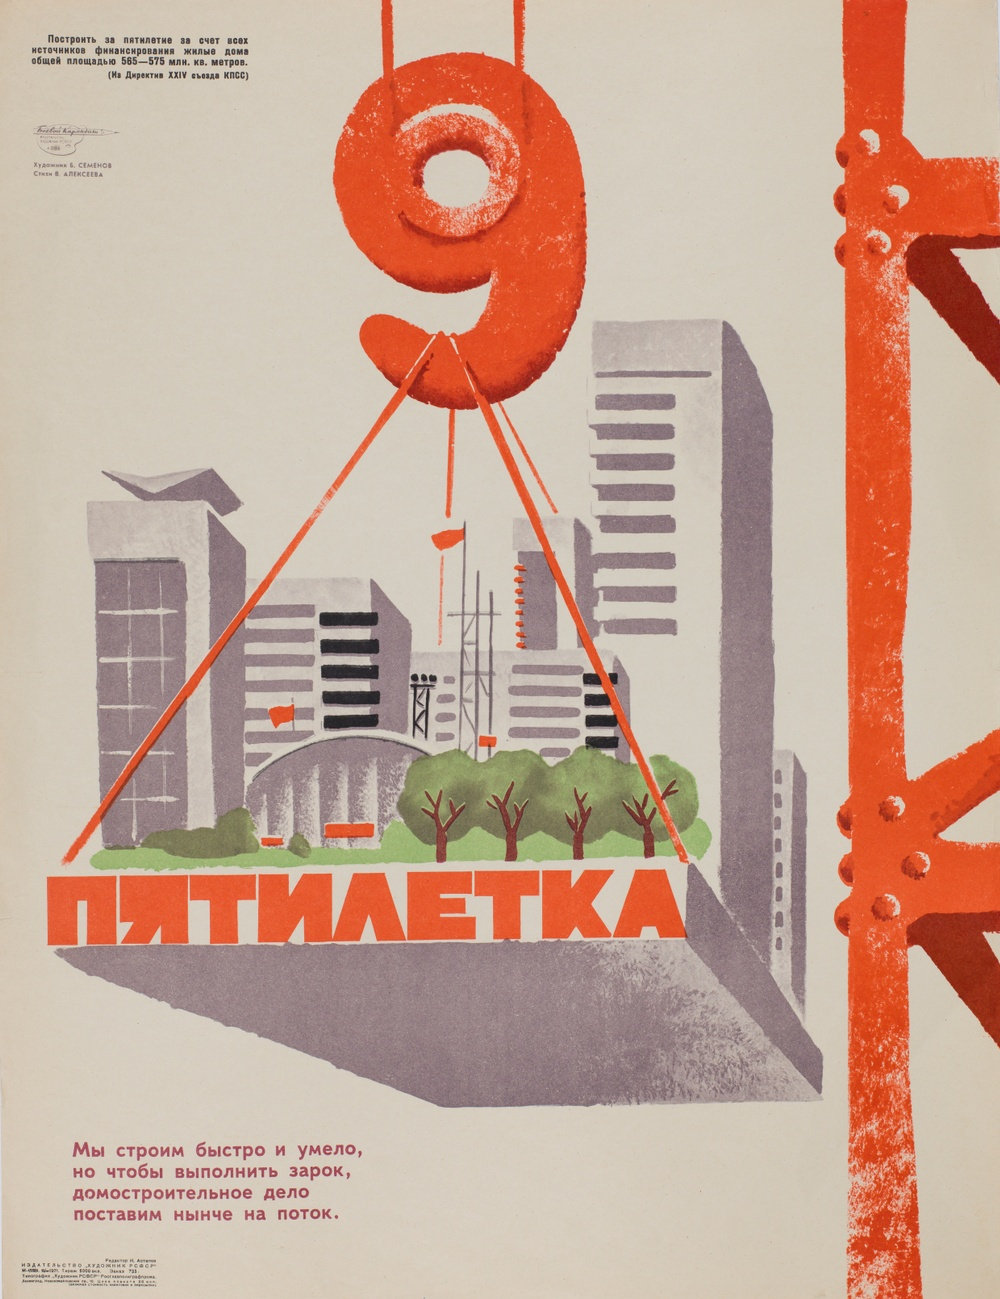 B. Semionov and V. Alekseyev. The 9th Five-Year Plan. We build quickly and skilfully. Today we will mass-produce houses, 1971 Poster, Soviet Union